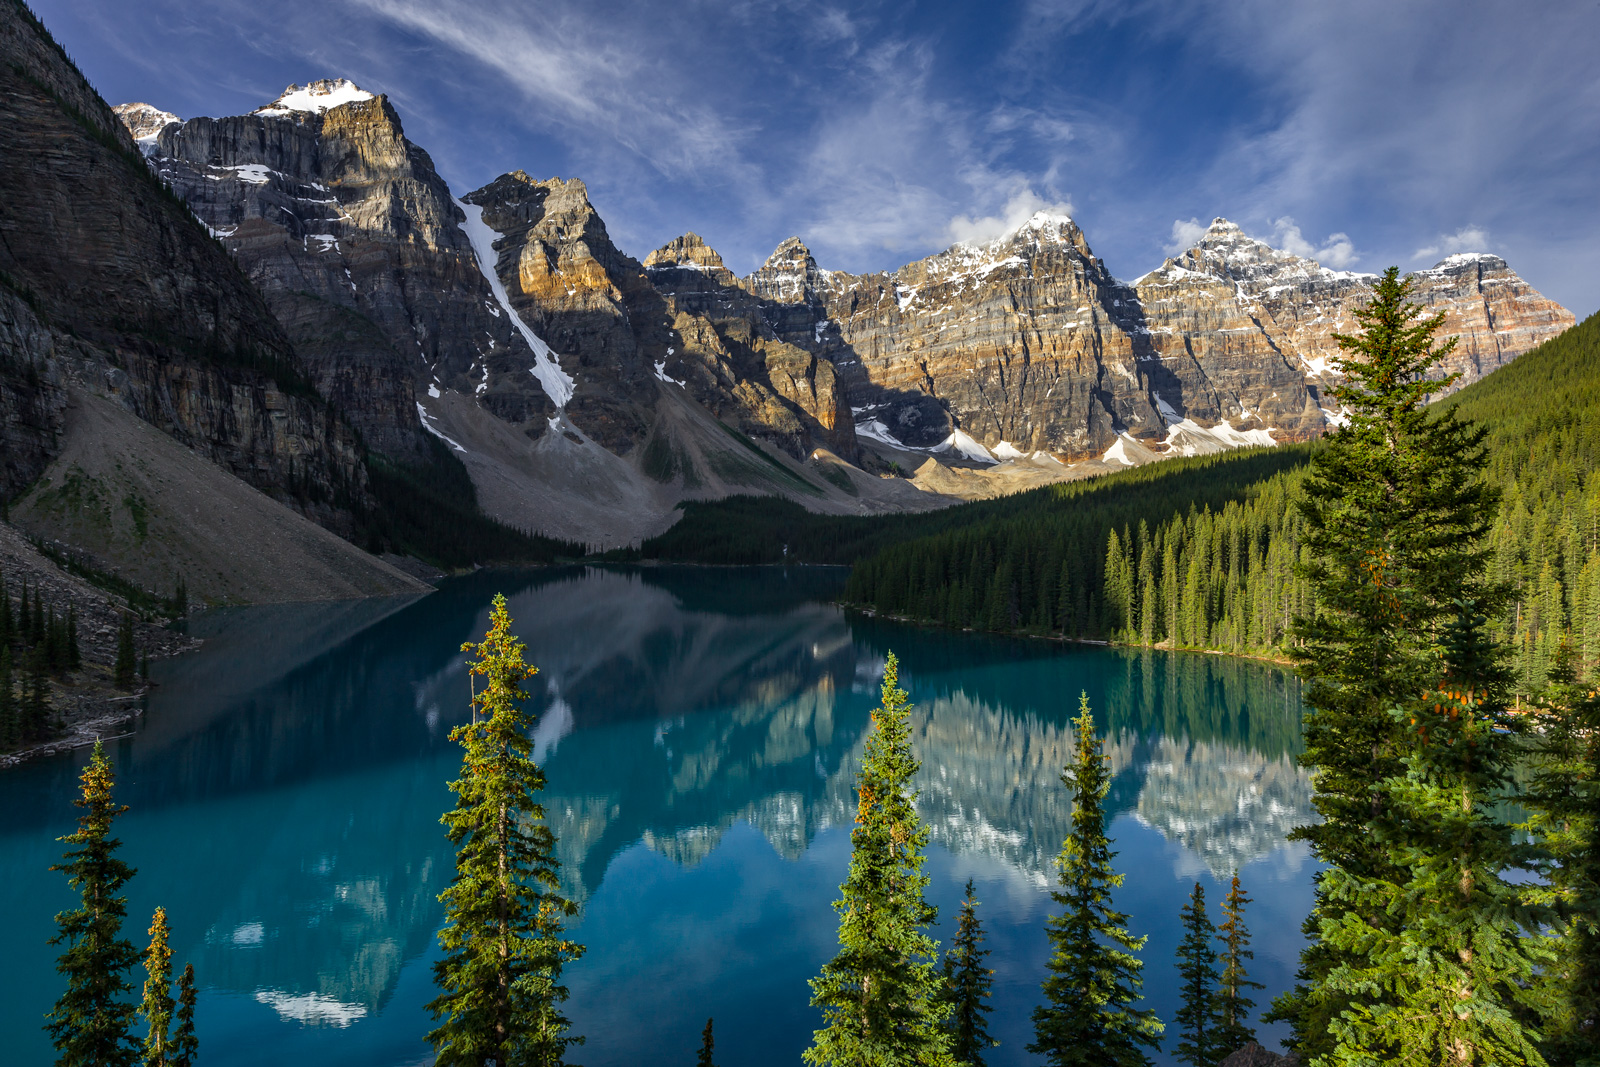 Canada, Alberta, Moraine Lake, Canadian Rockies, limited edition, photograph, fine art, landscape, photo